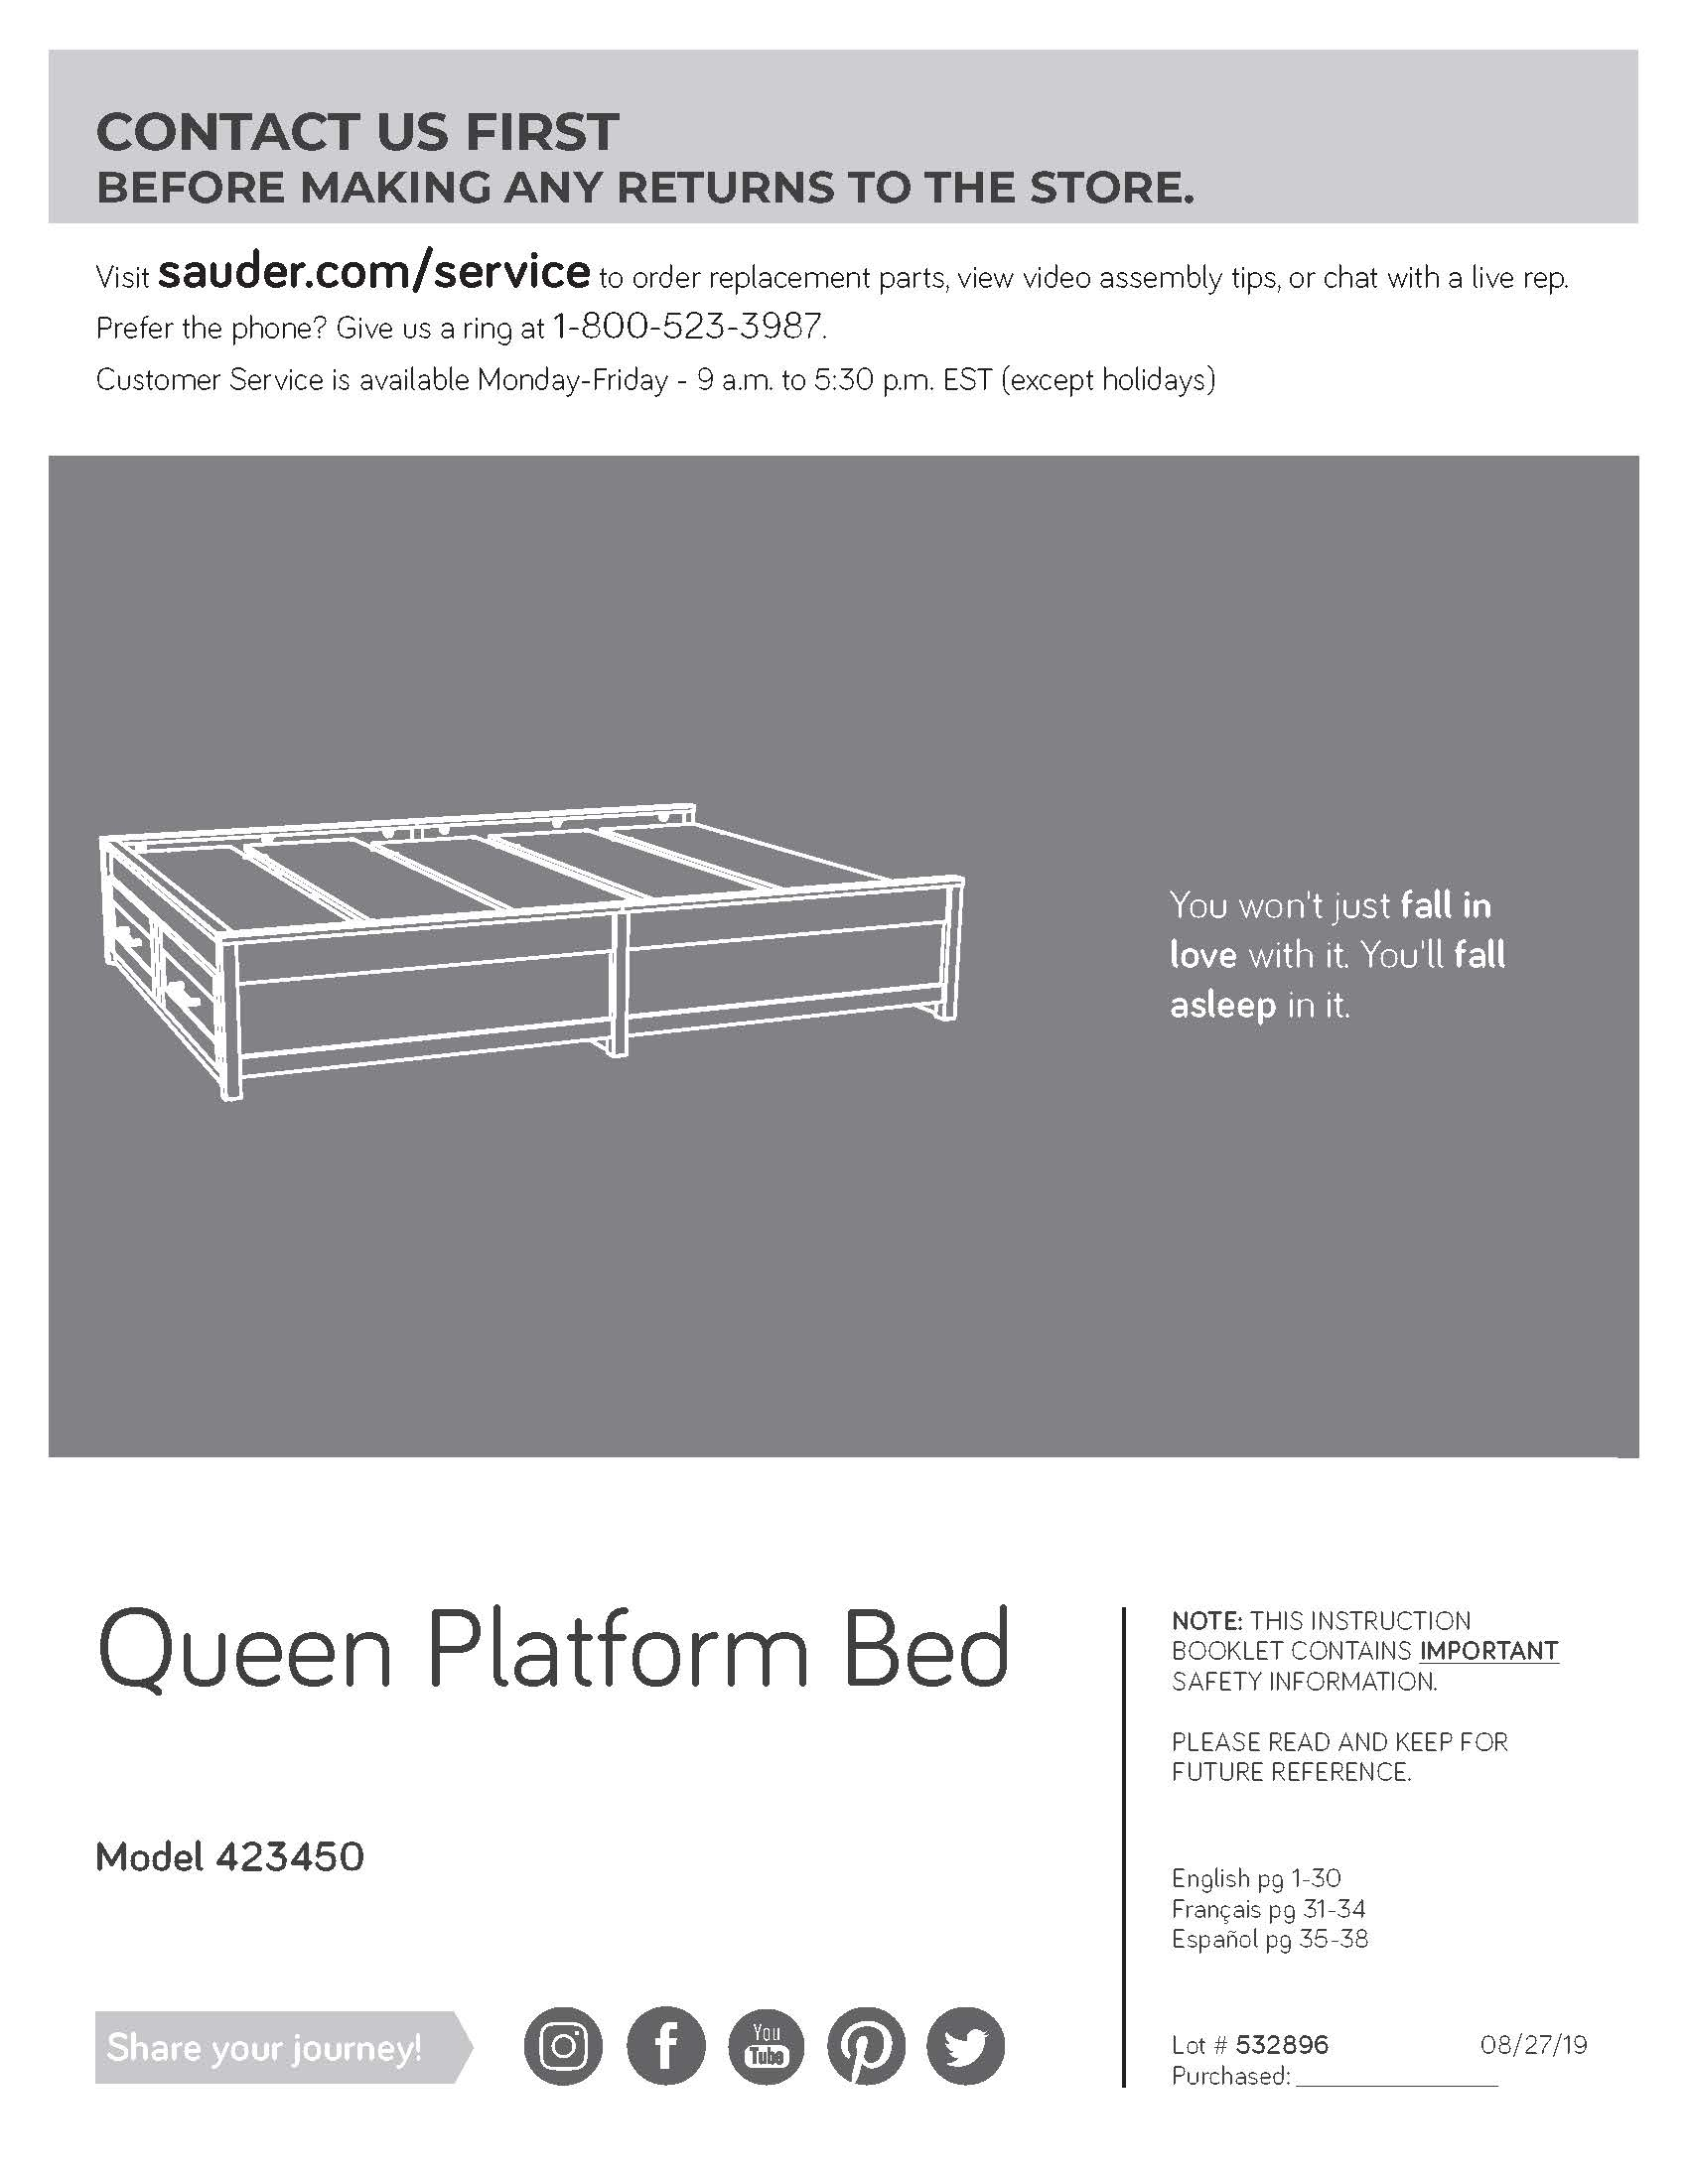 Modern Farmhouse Queen Platform Bed Assembly Manual